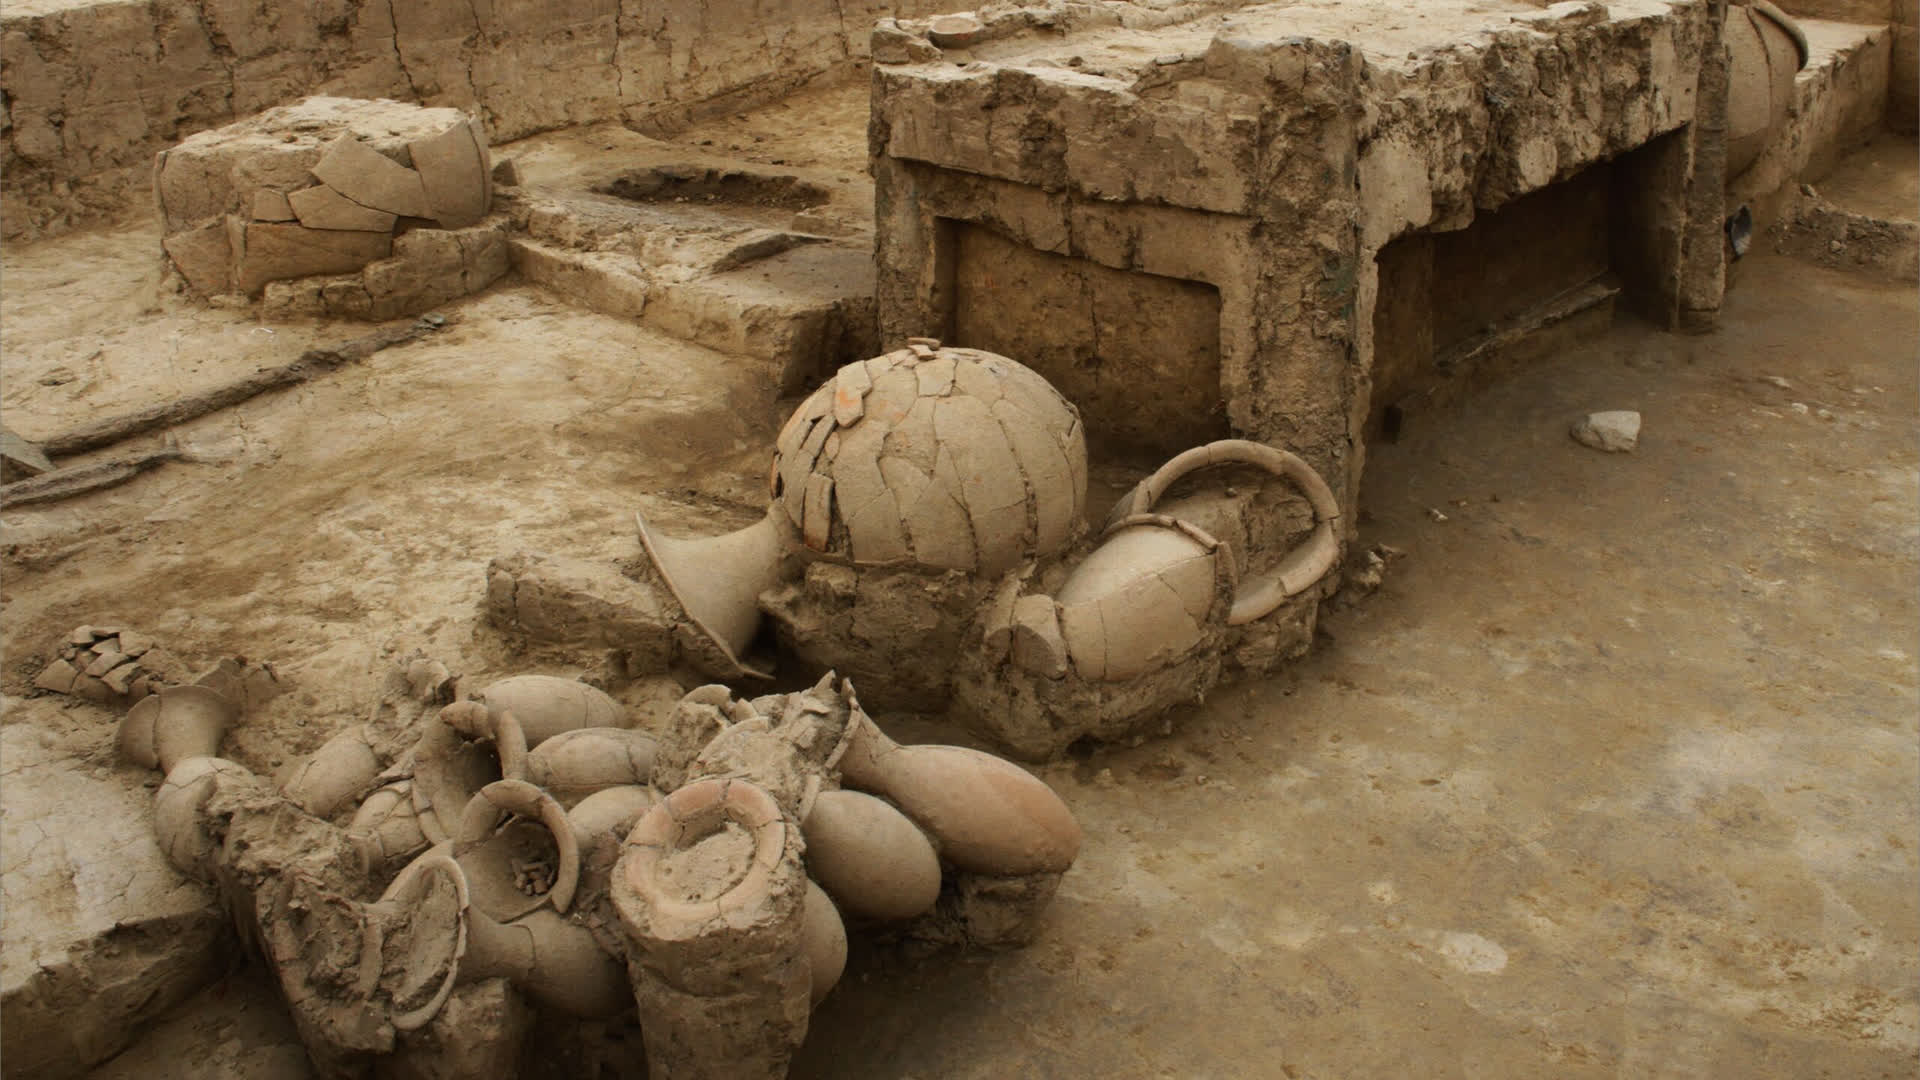 Beyond Harappa: The 'Other' Cultures (3000 BCE – 900 BCE)